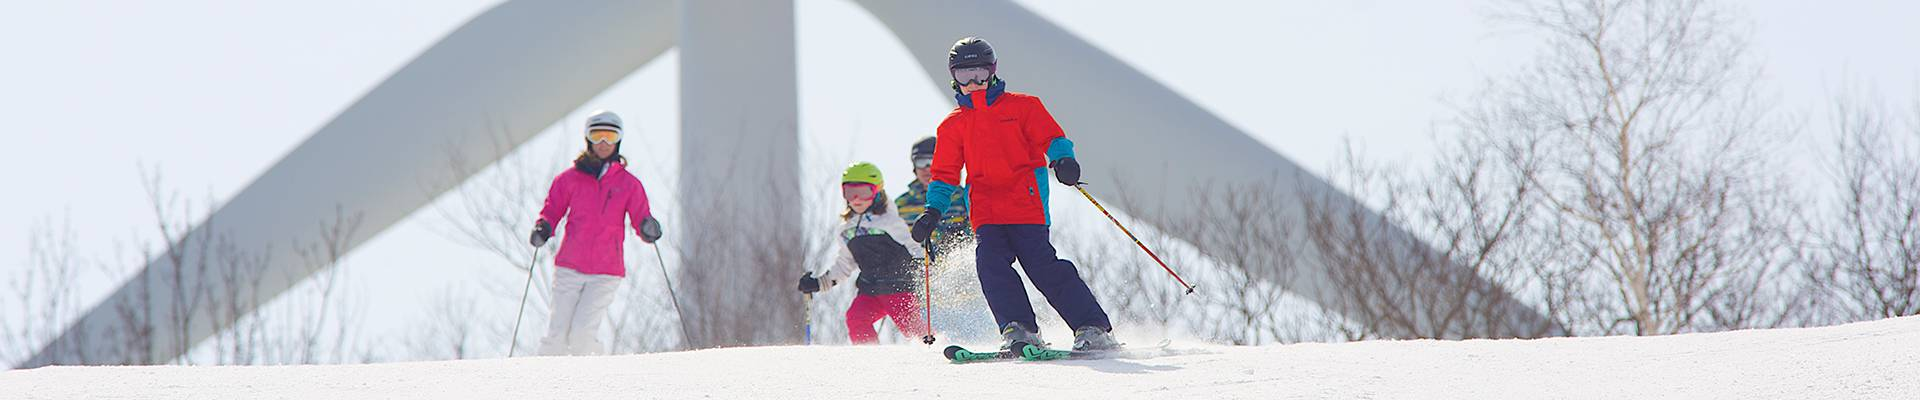 Family Skiing in front of turbine